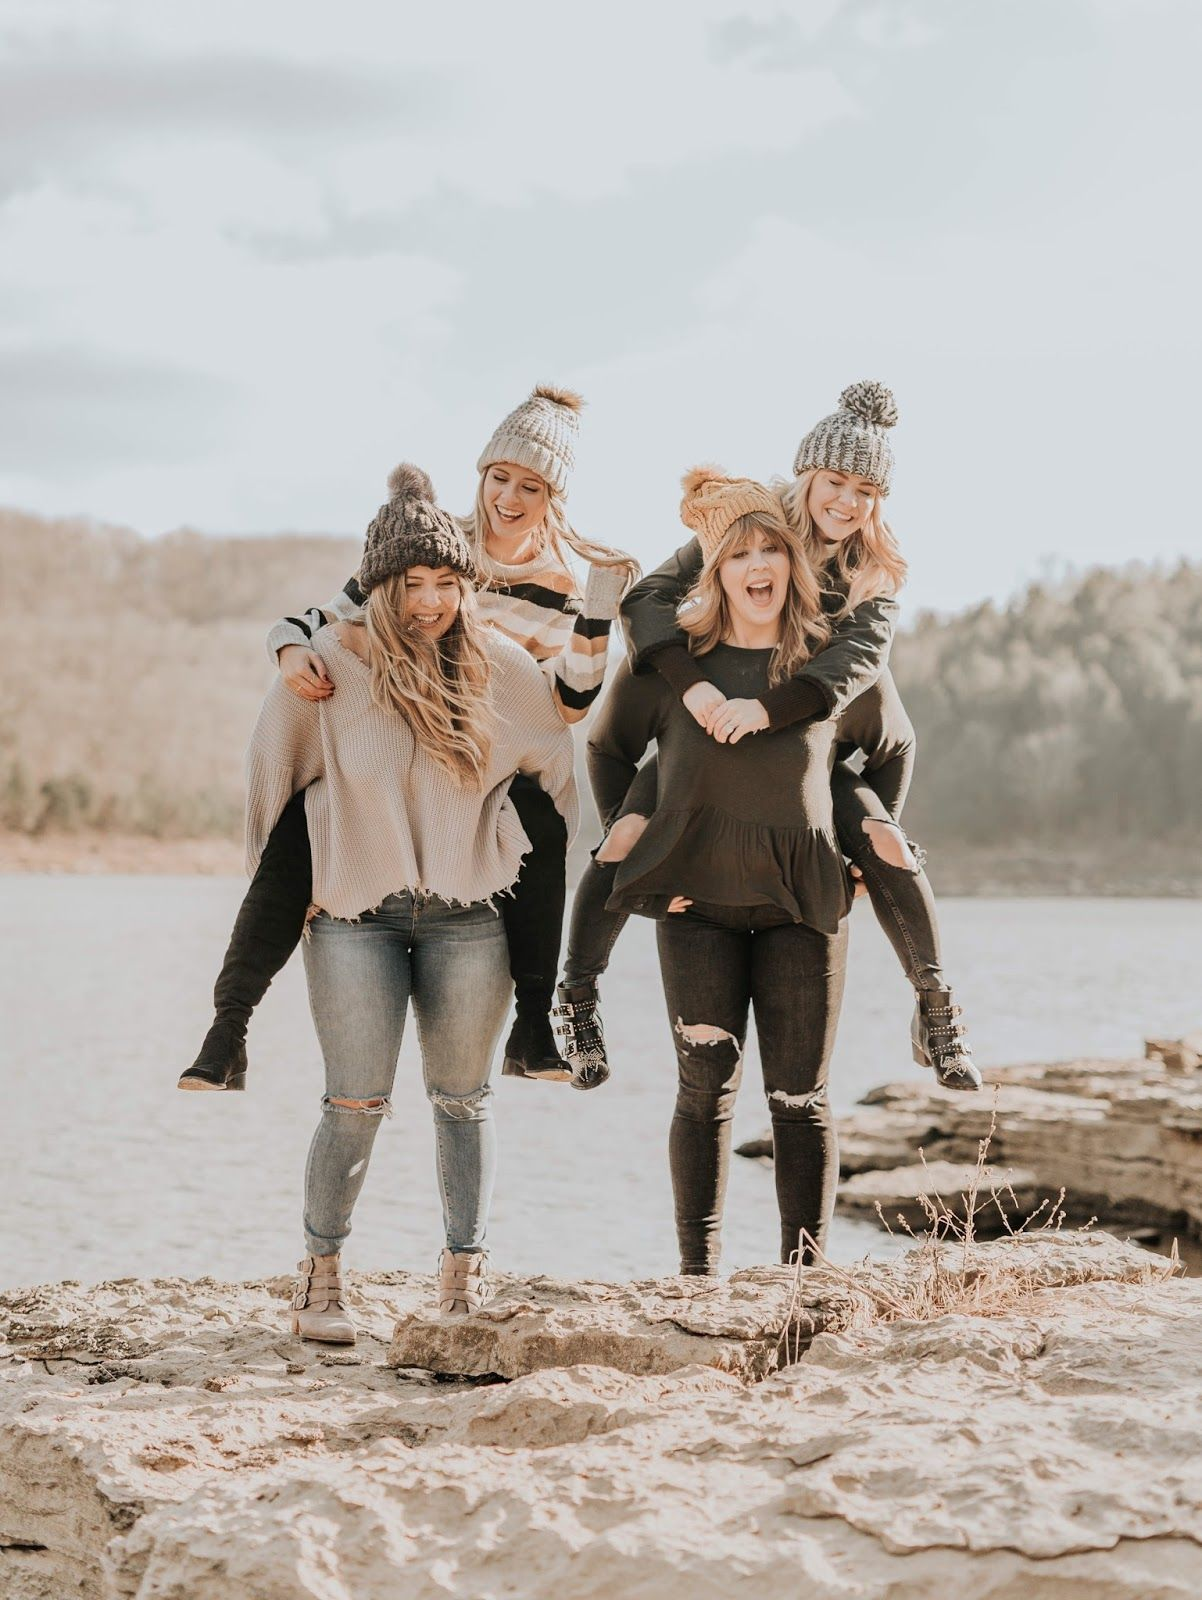 9 Best Friend Poses For Your Instagram | Best friend poses ...